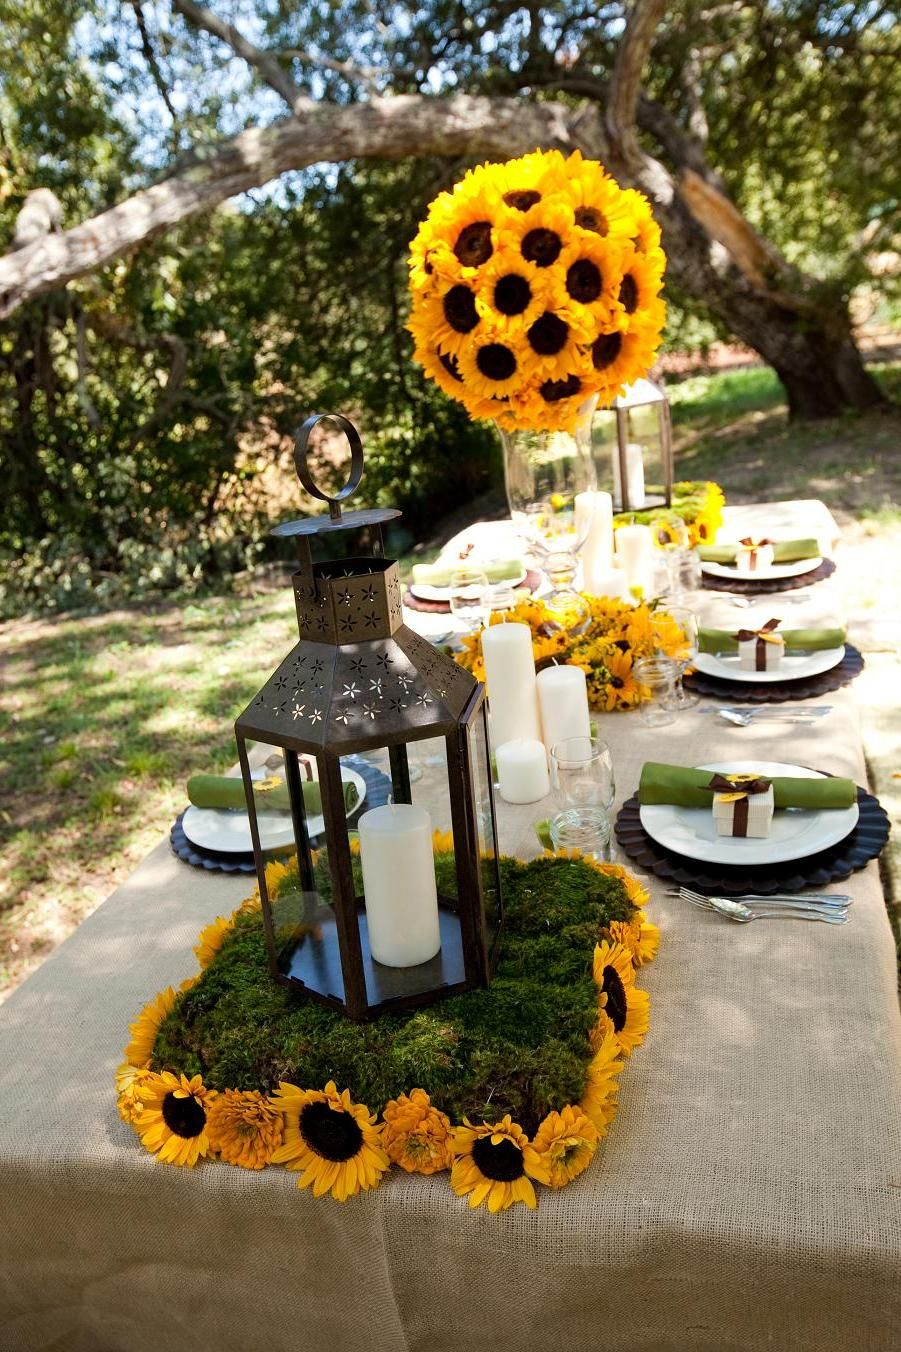 Winter sunflower weddings sunflower wedding decor ideas winter sunflower weddings sunflower wedding decor ideas junglespirit Image collections